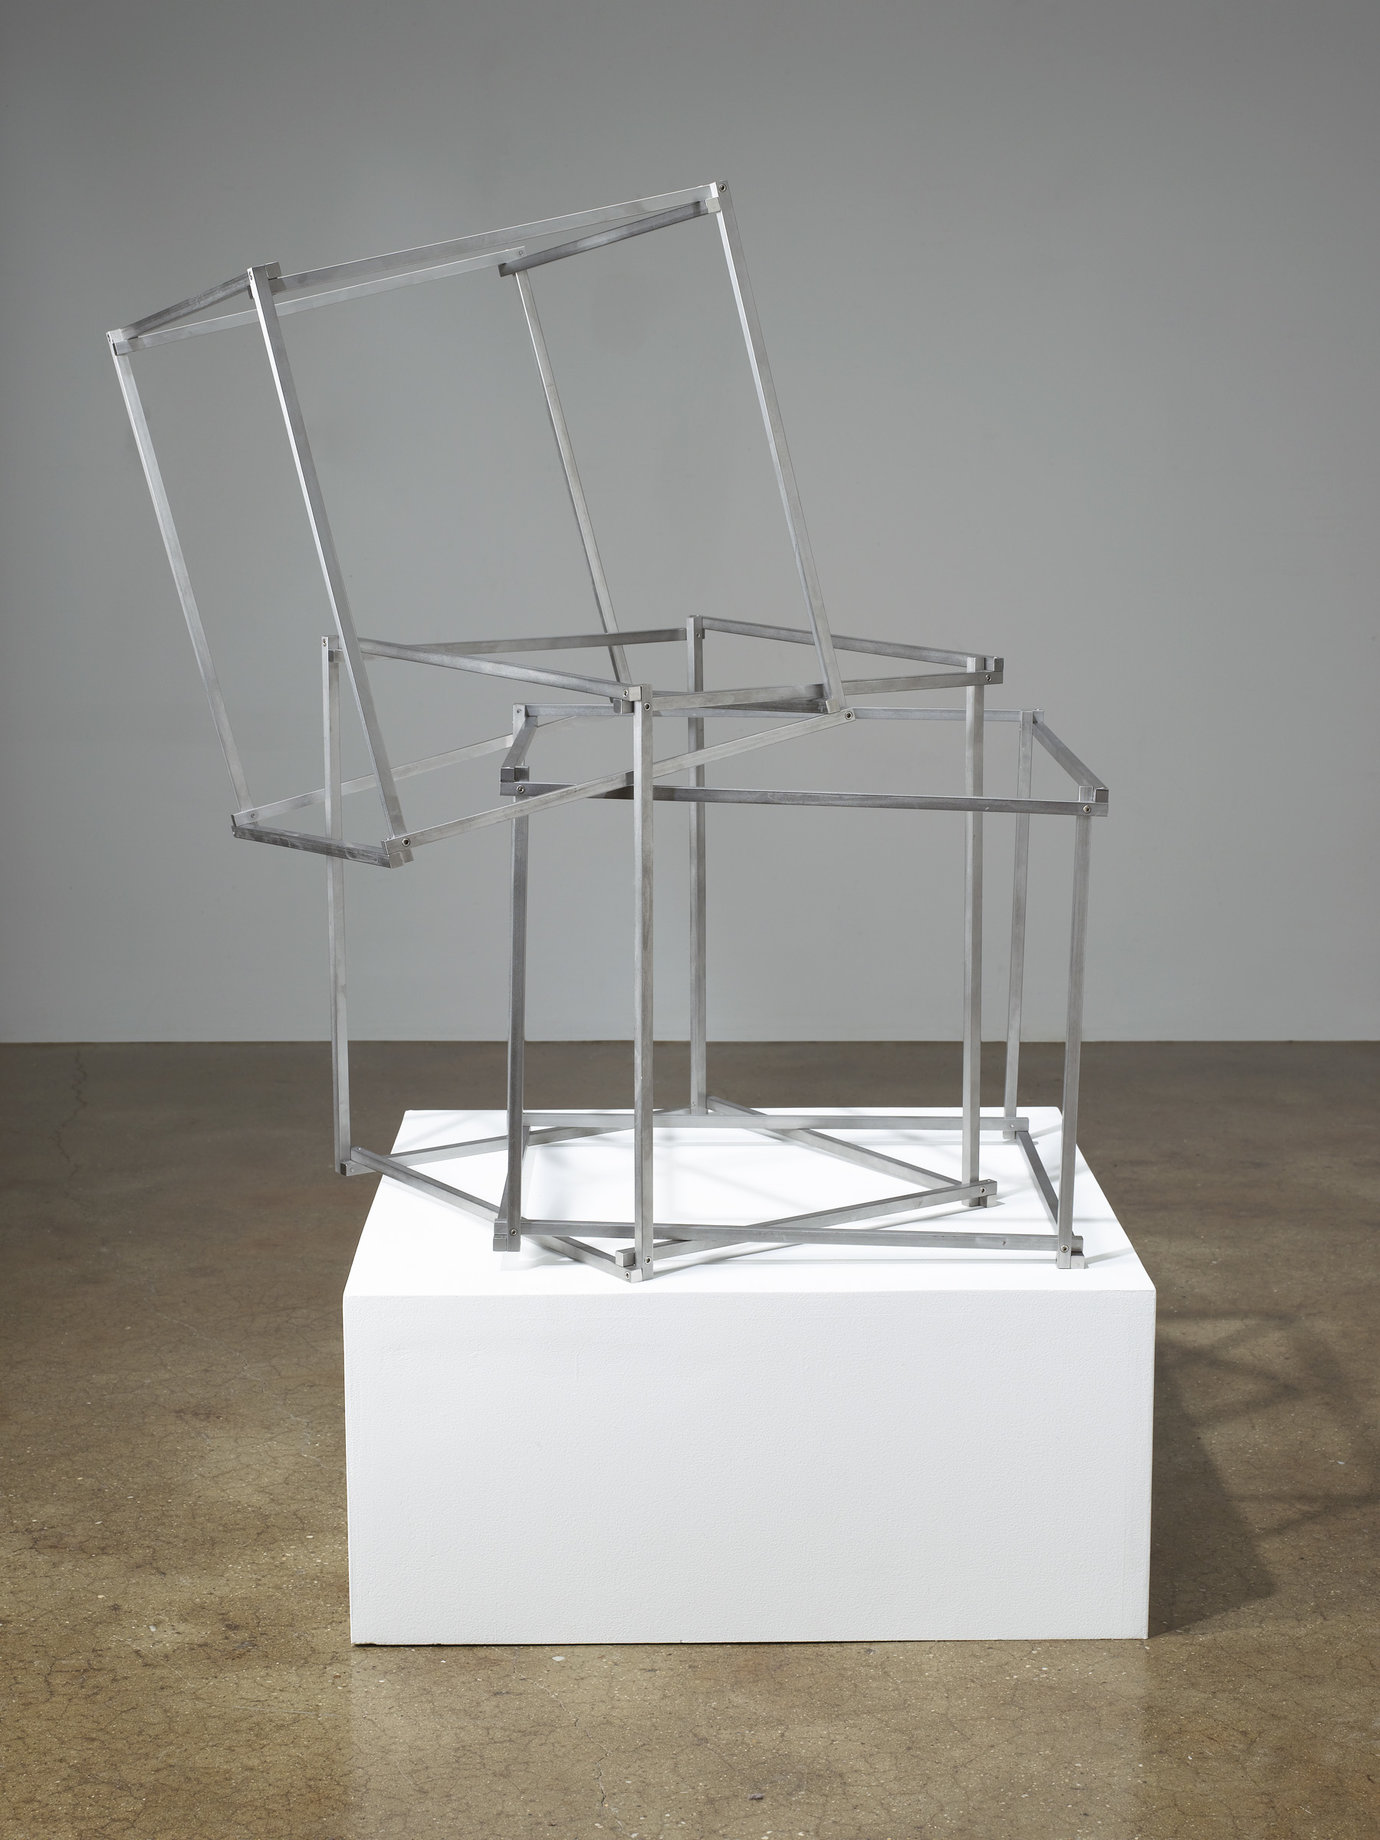 ", 2008. Stainless steel, overall installation dimensions variable16"" x 14"" x 14"" (40.6 cm x 35.6 cm x 35.6 cm), 3 frames, each."